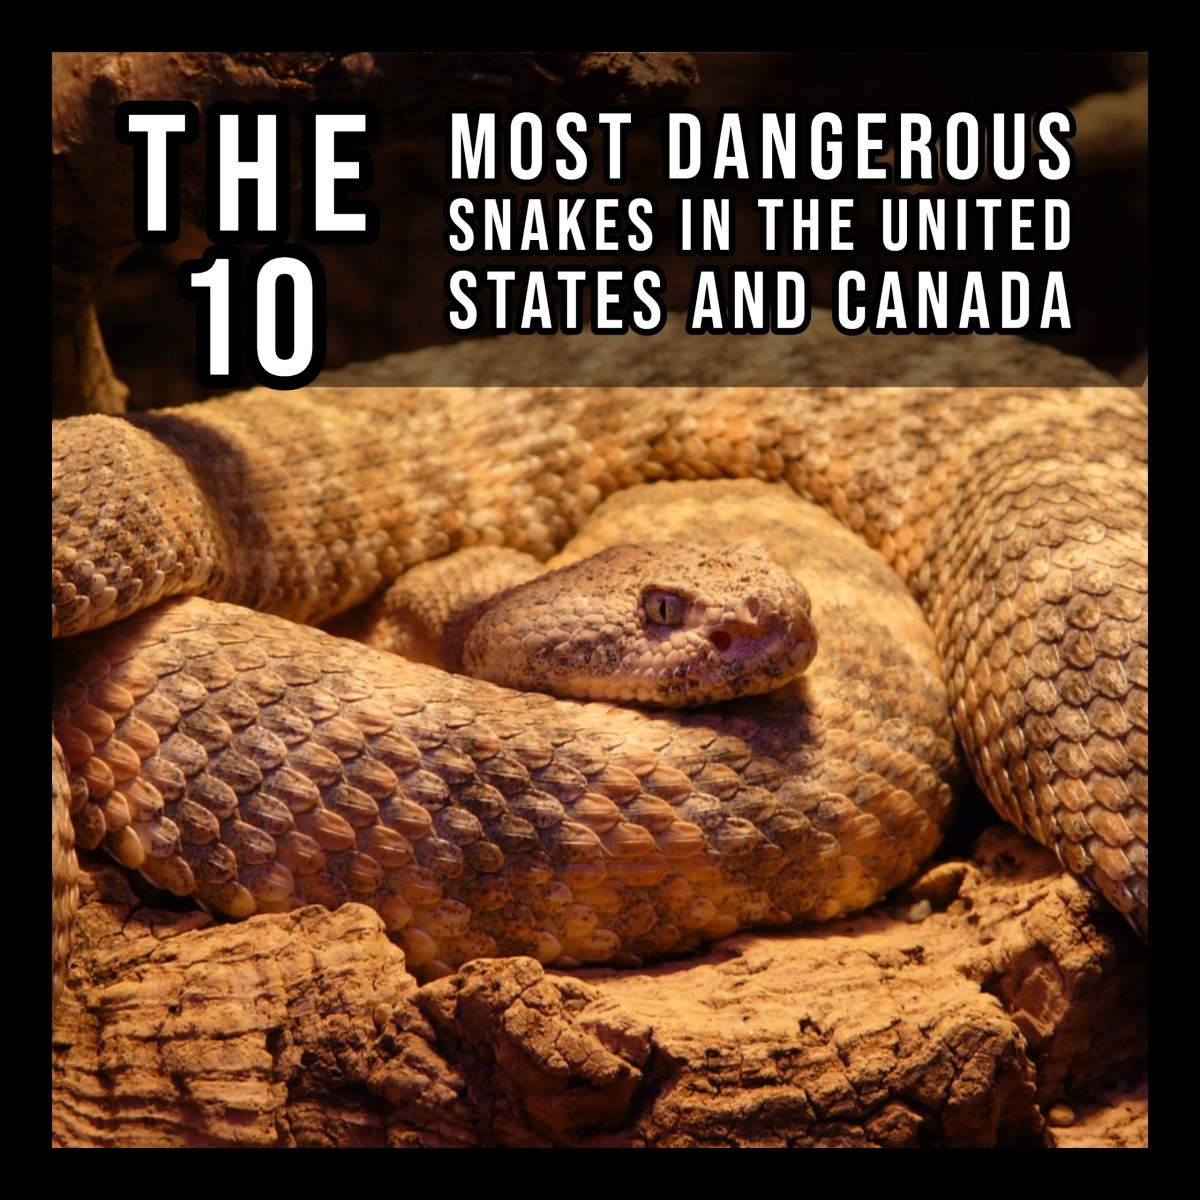 The 10 Deadliest Snakes in the United States and Canada